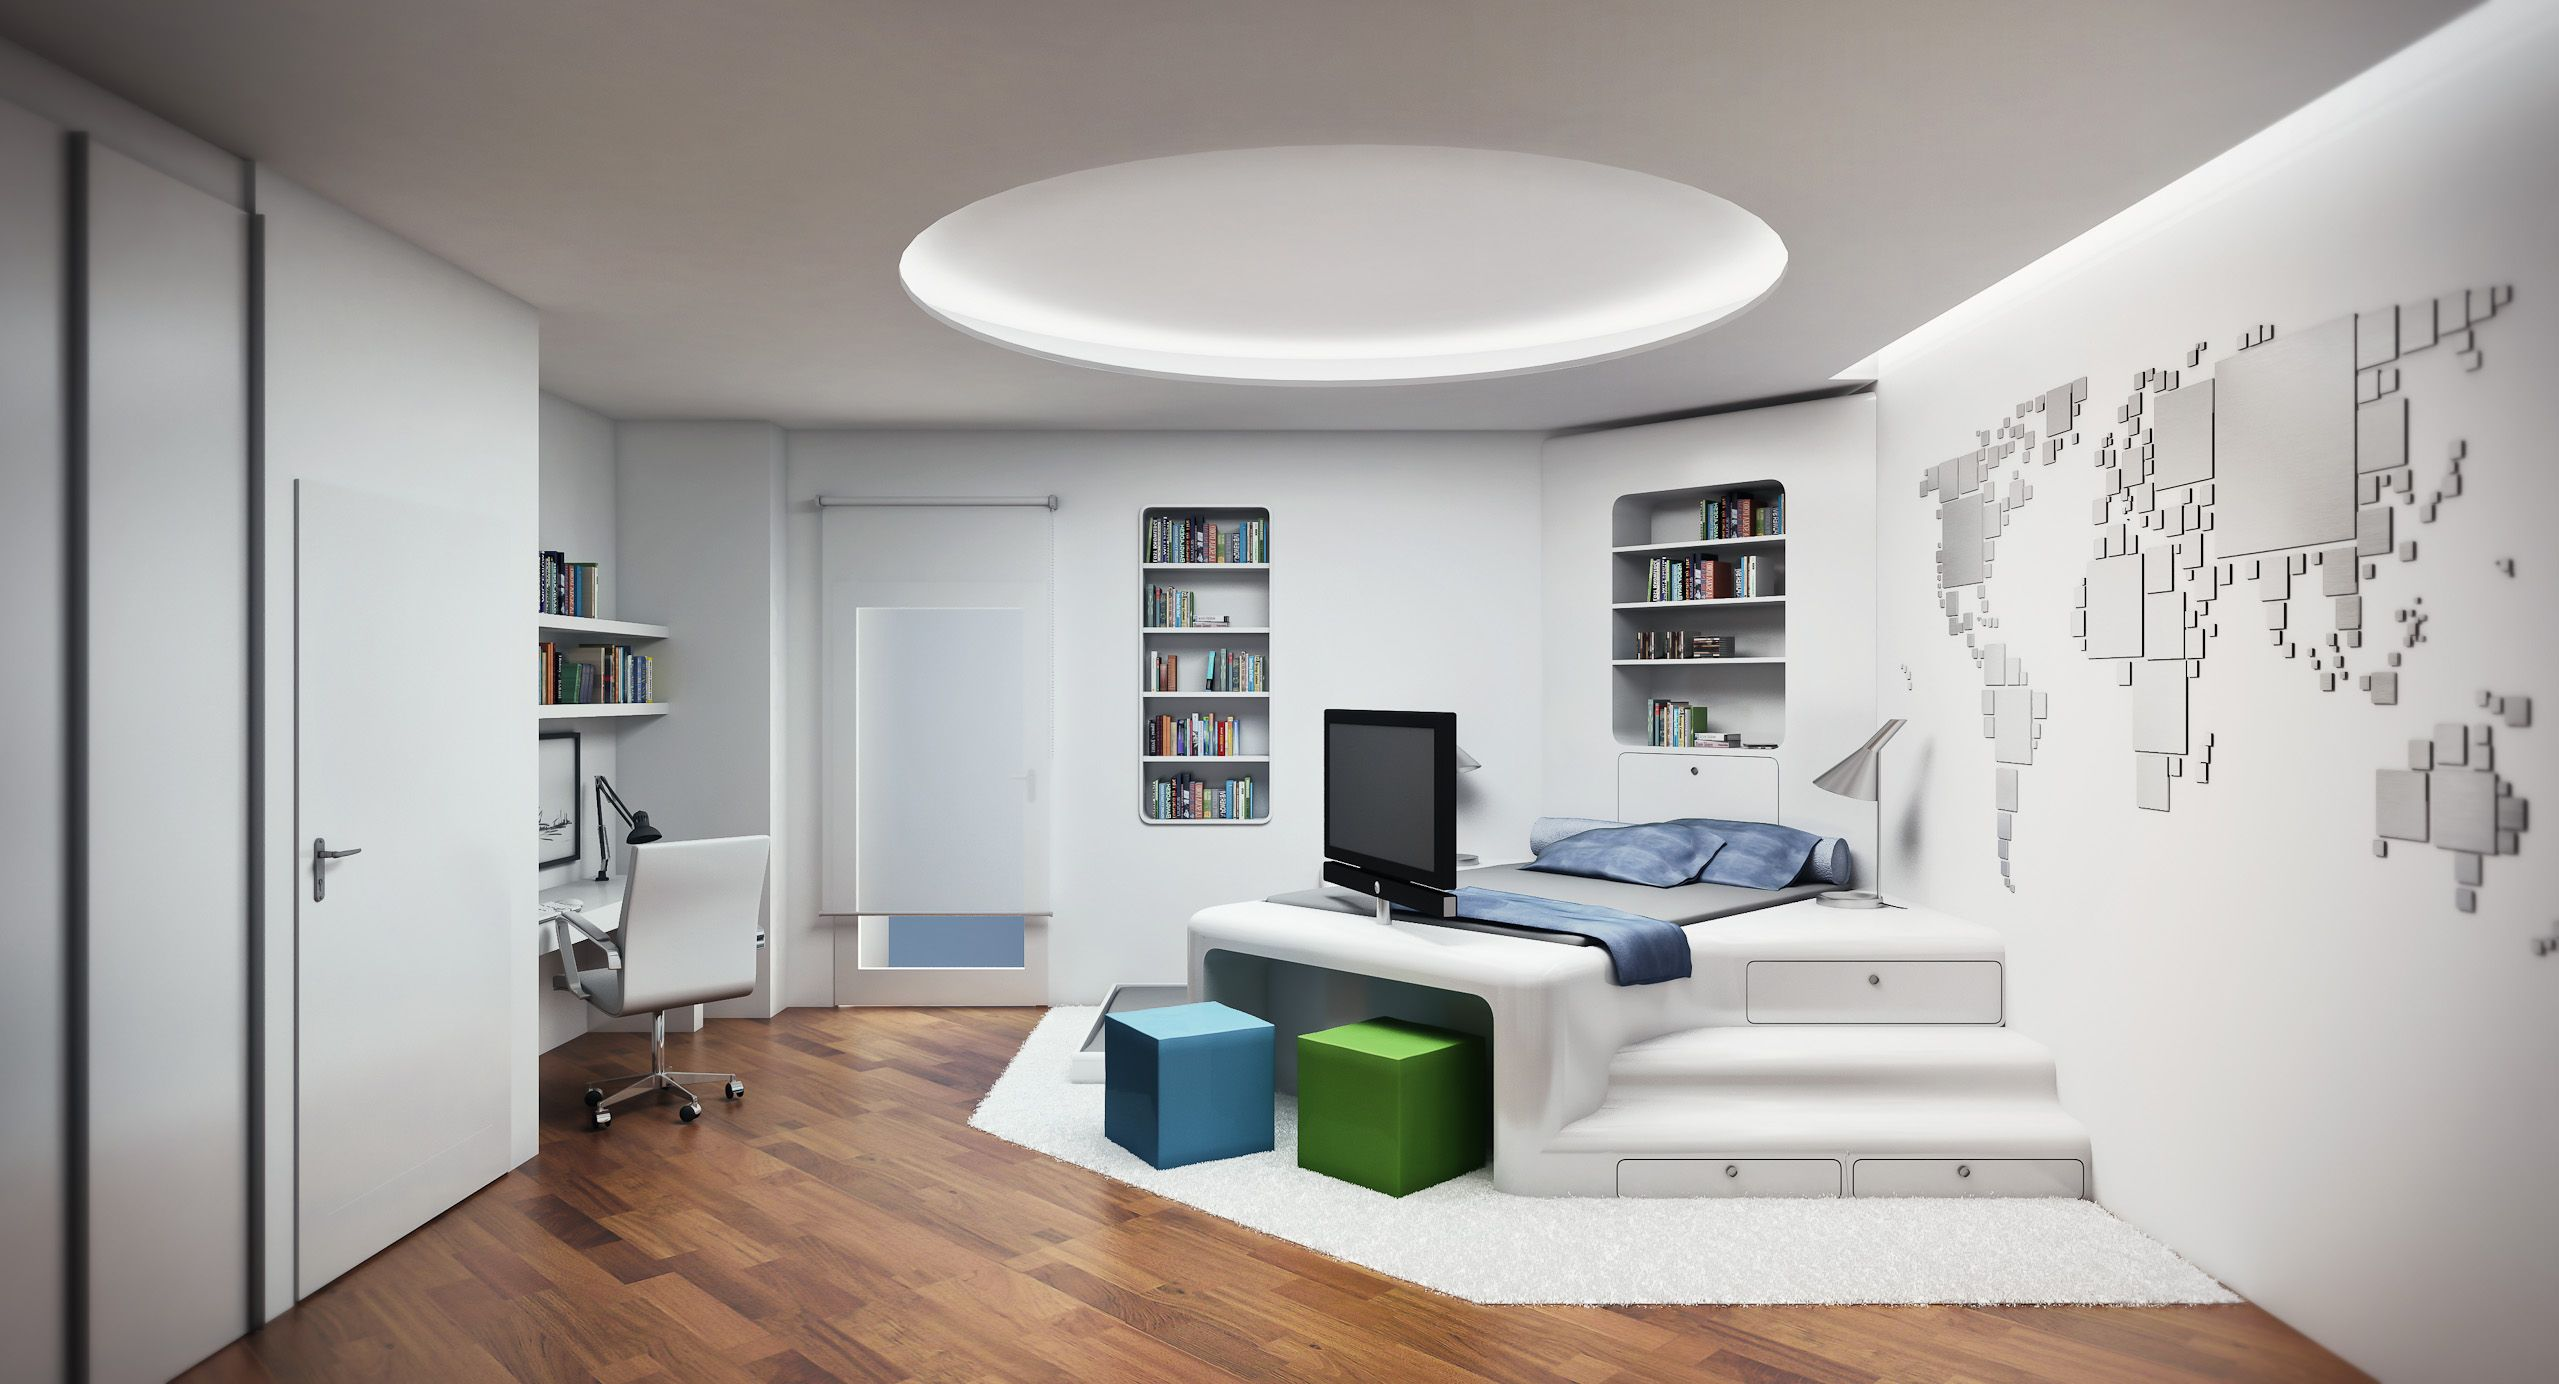 Living Room Interior Comfortable With Cool Circle Hidden Lamp Laminated Wooden Floor White Wall Modern Architecture